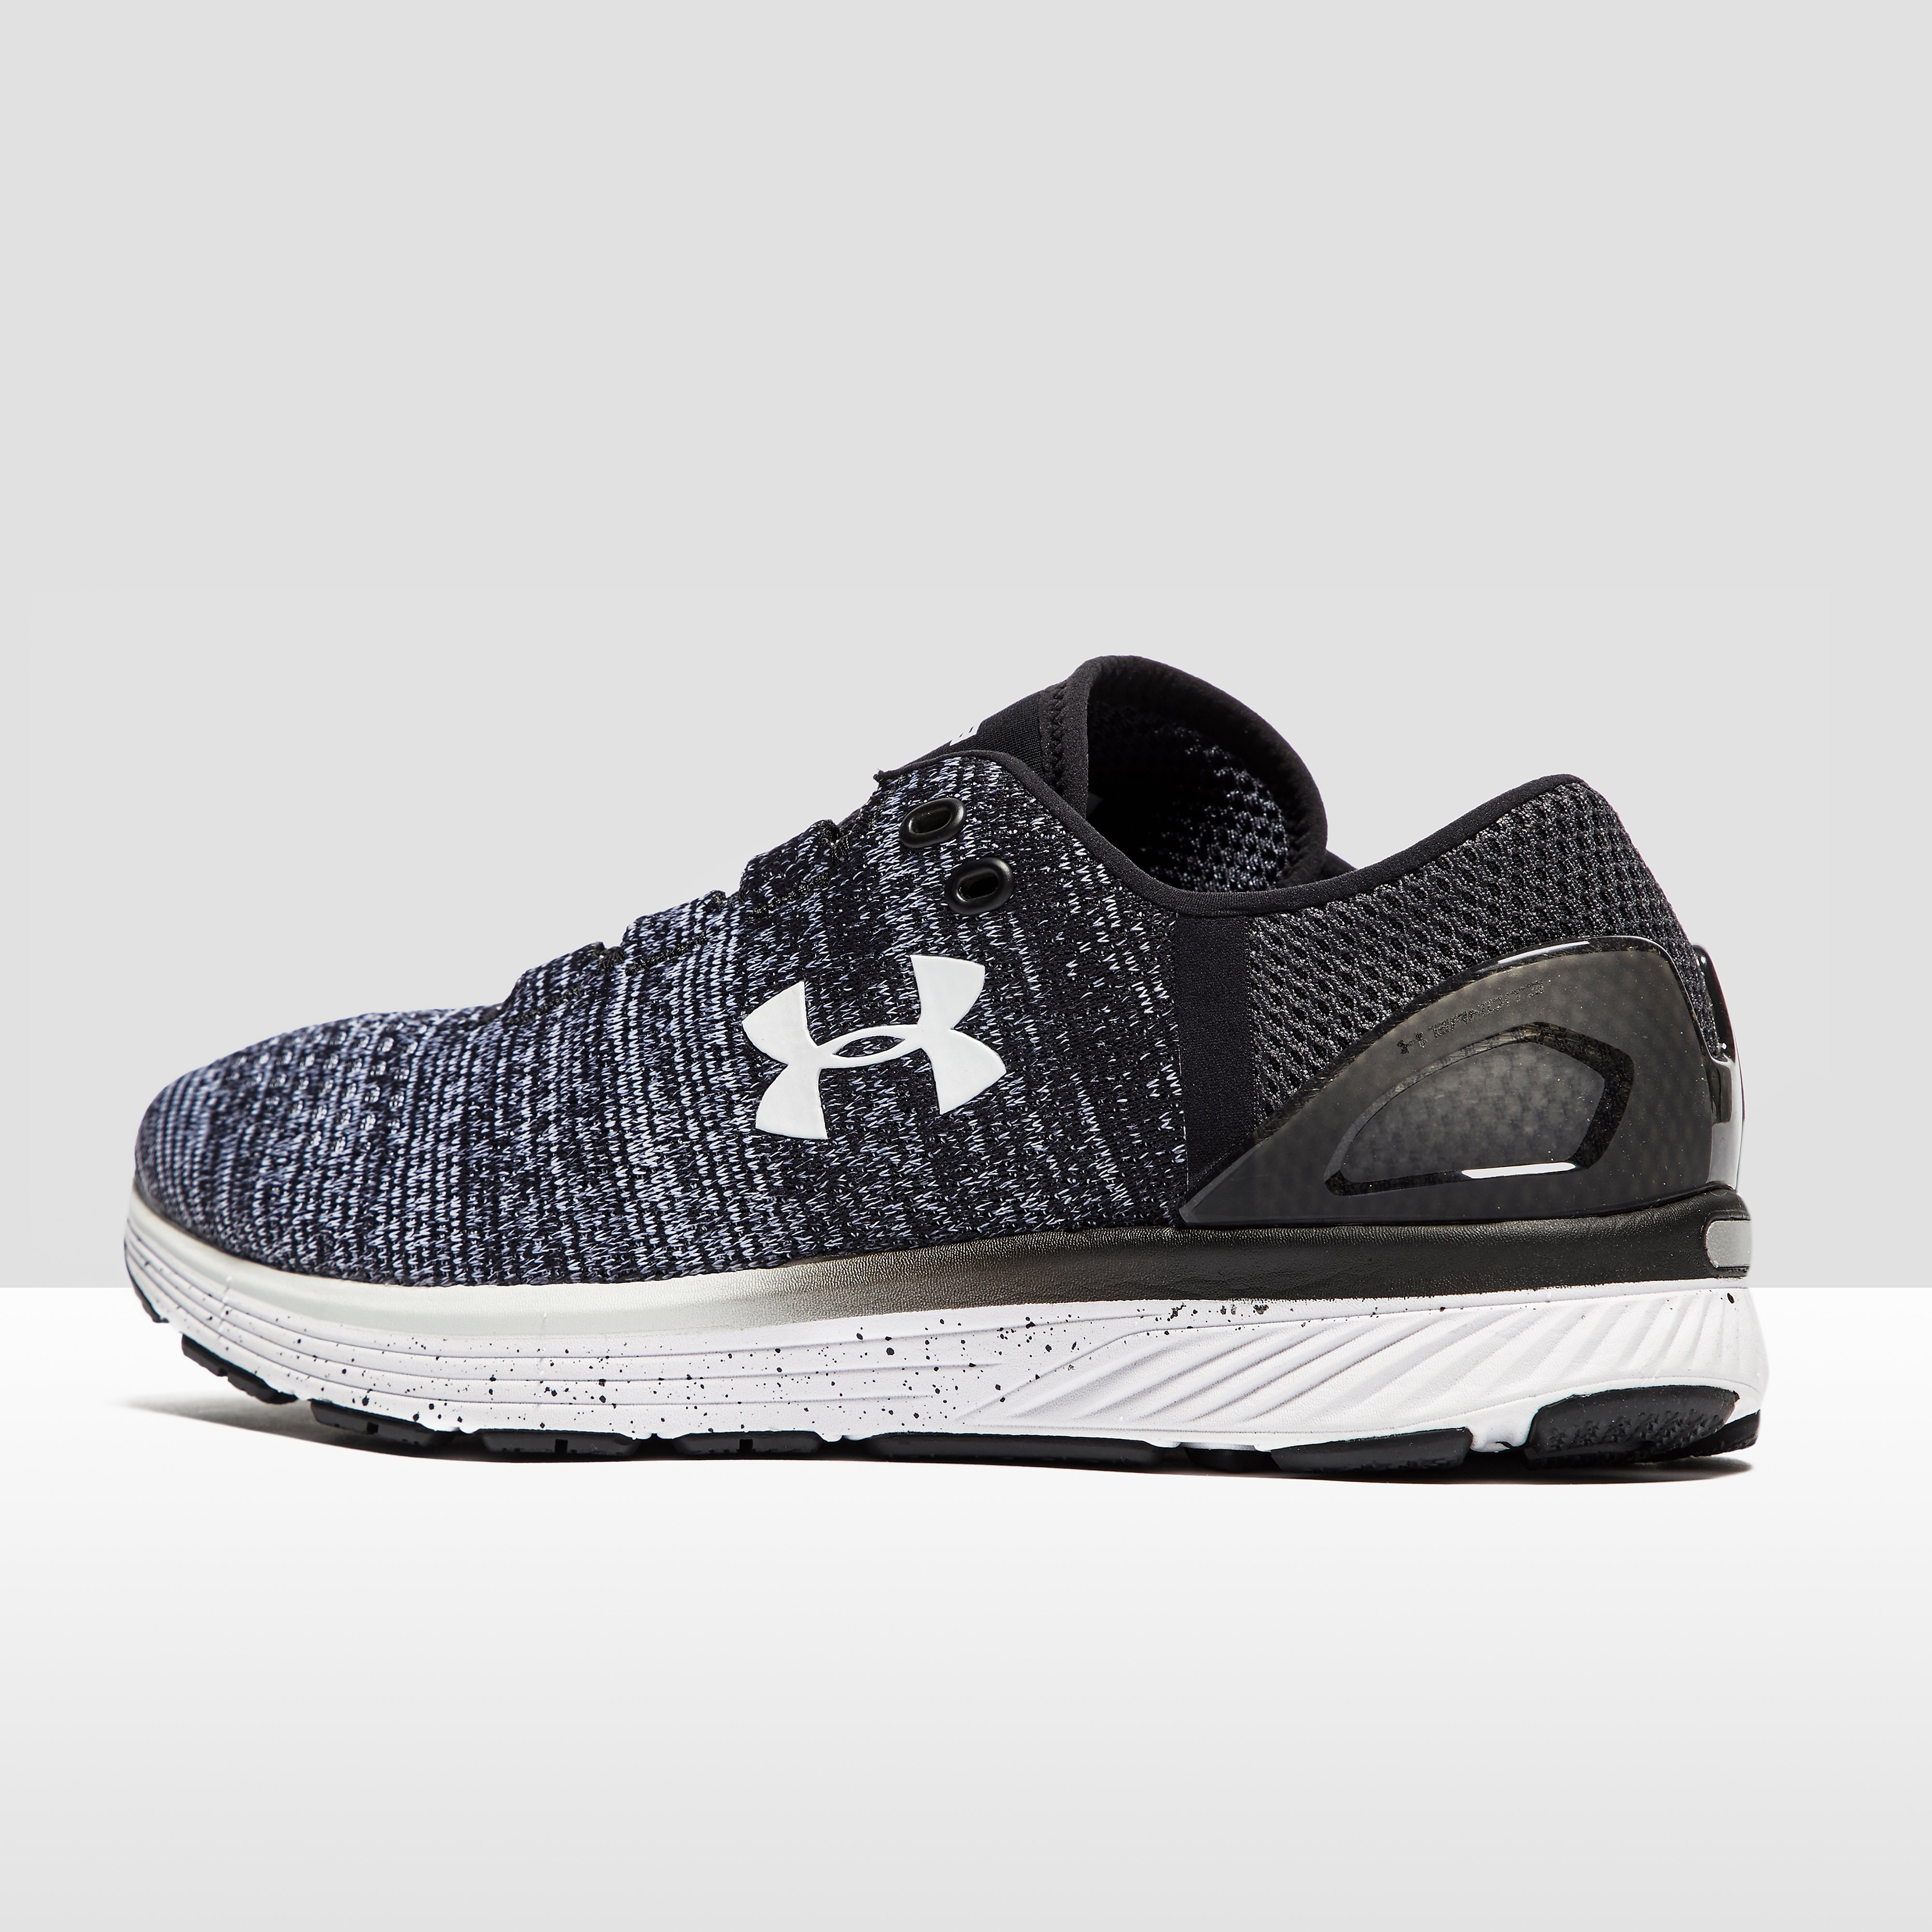 Under Armour Women's Charged Bandit 3 Running Shoe